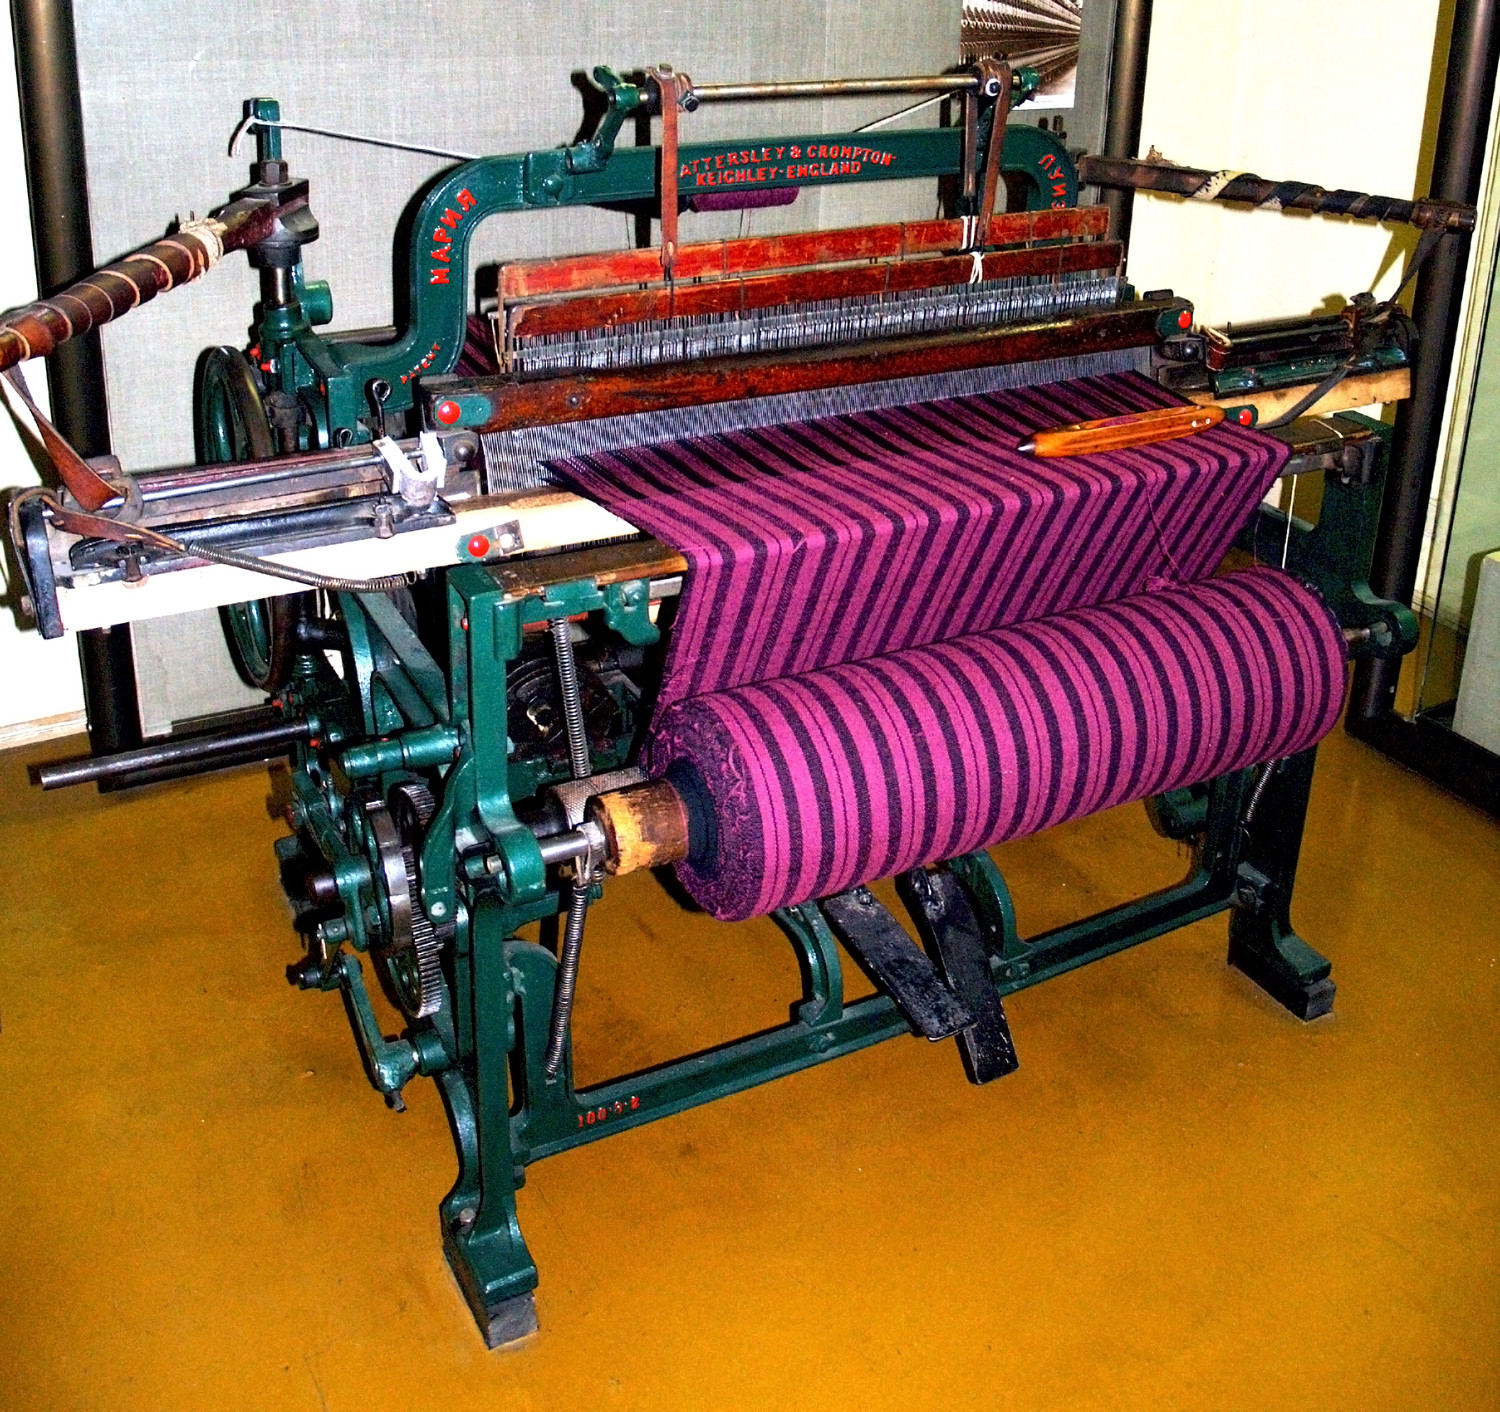 Awesome Loom Loom Knitting Machine Of Gorgeous 41 Photos Loom Knitting Machine